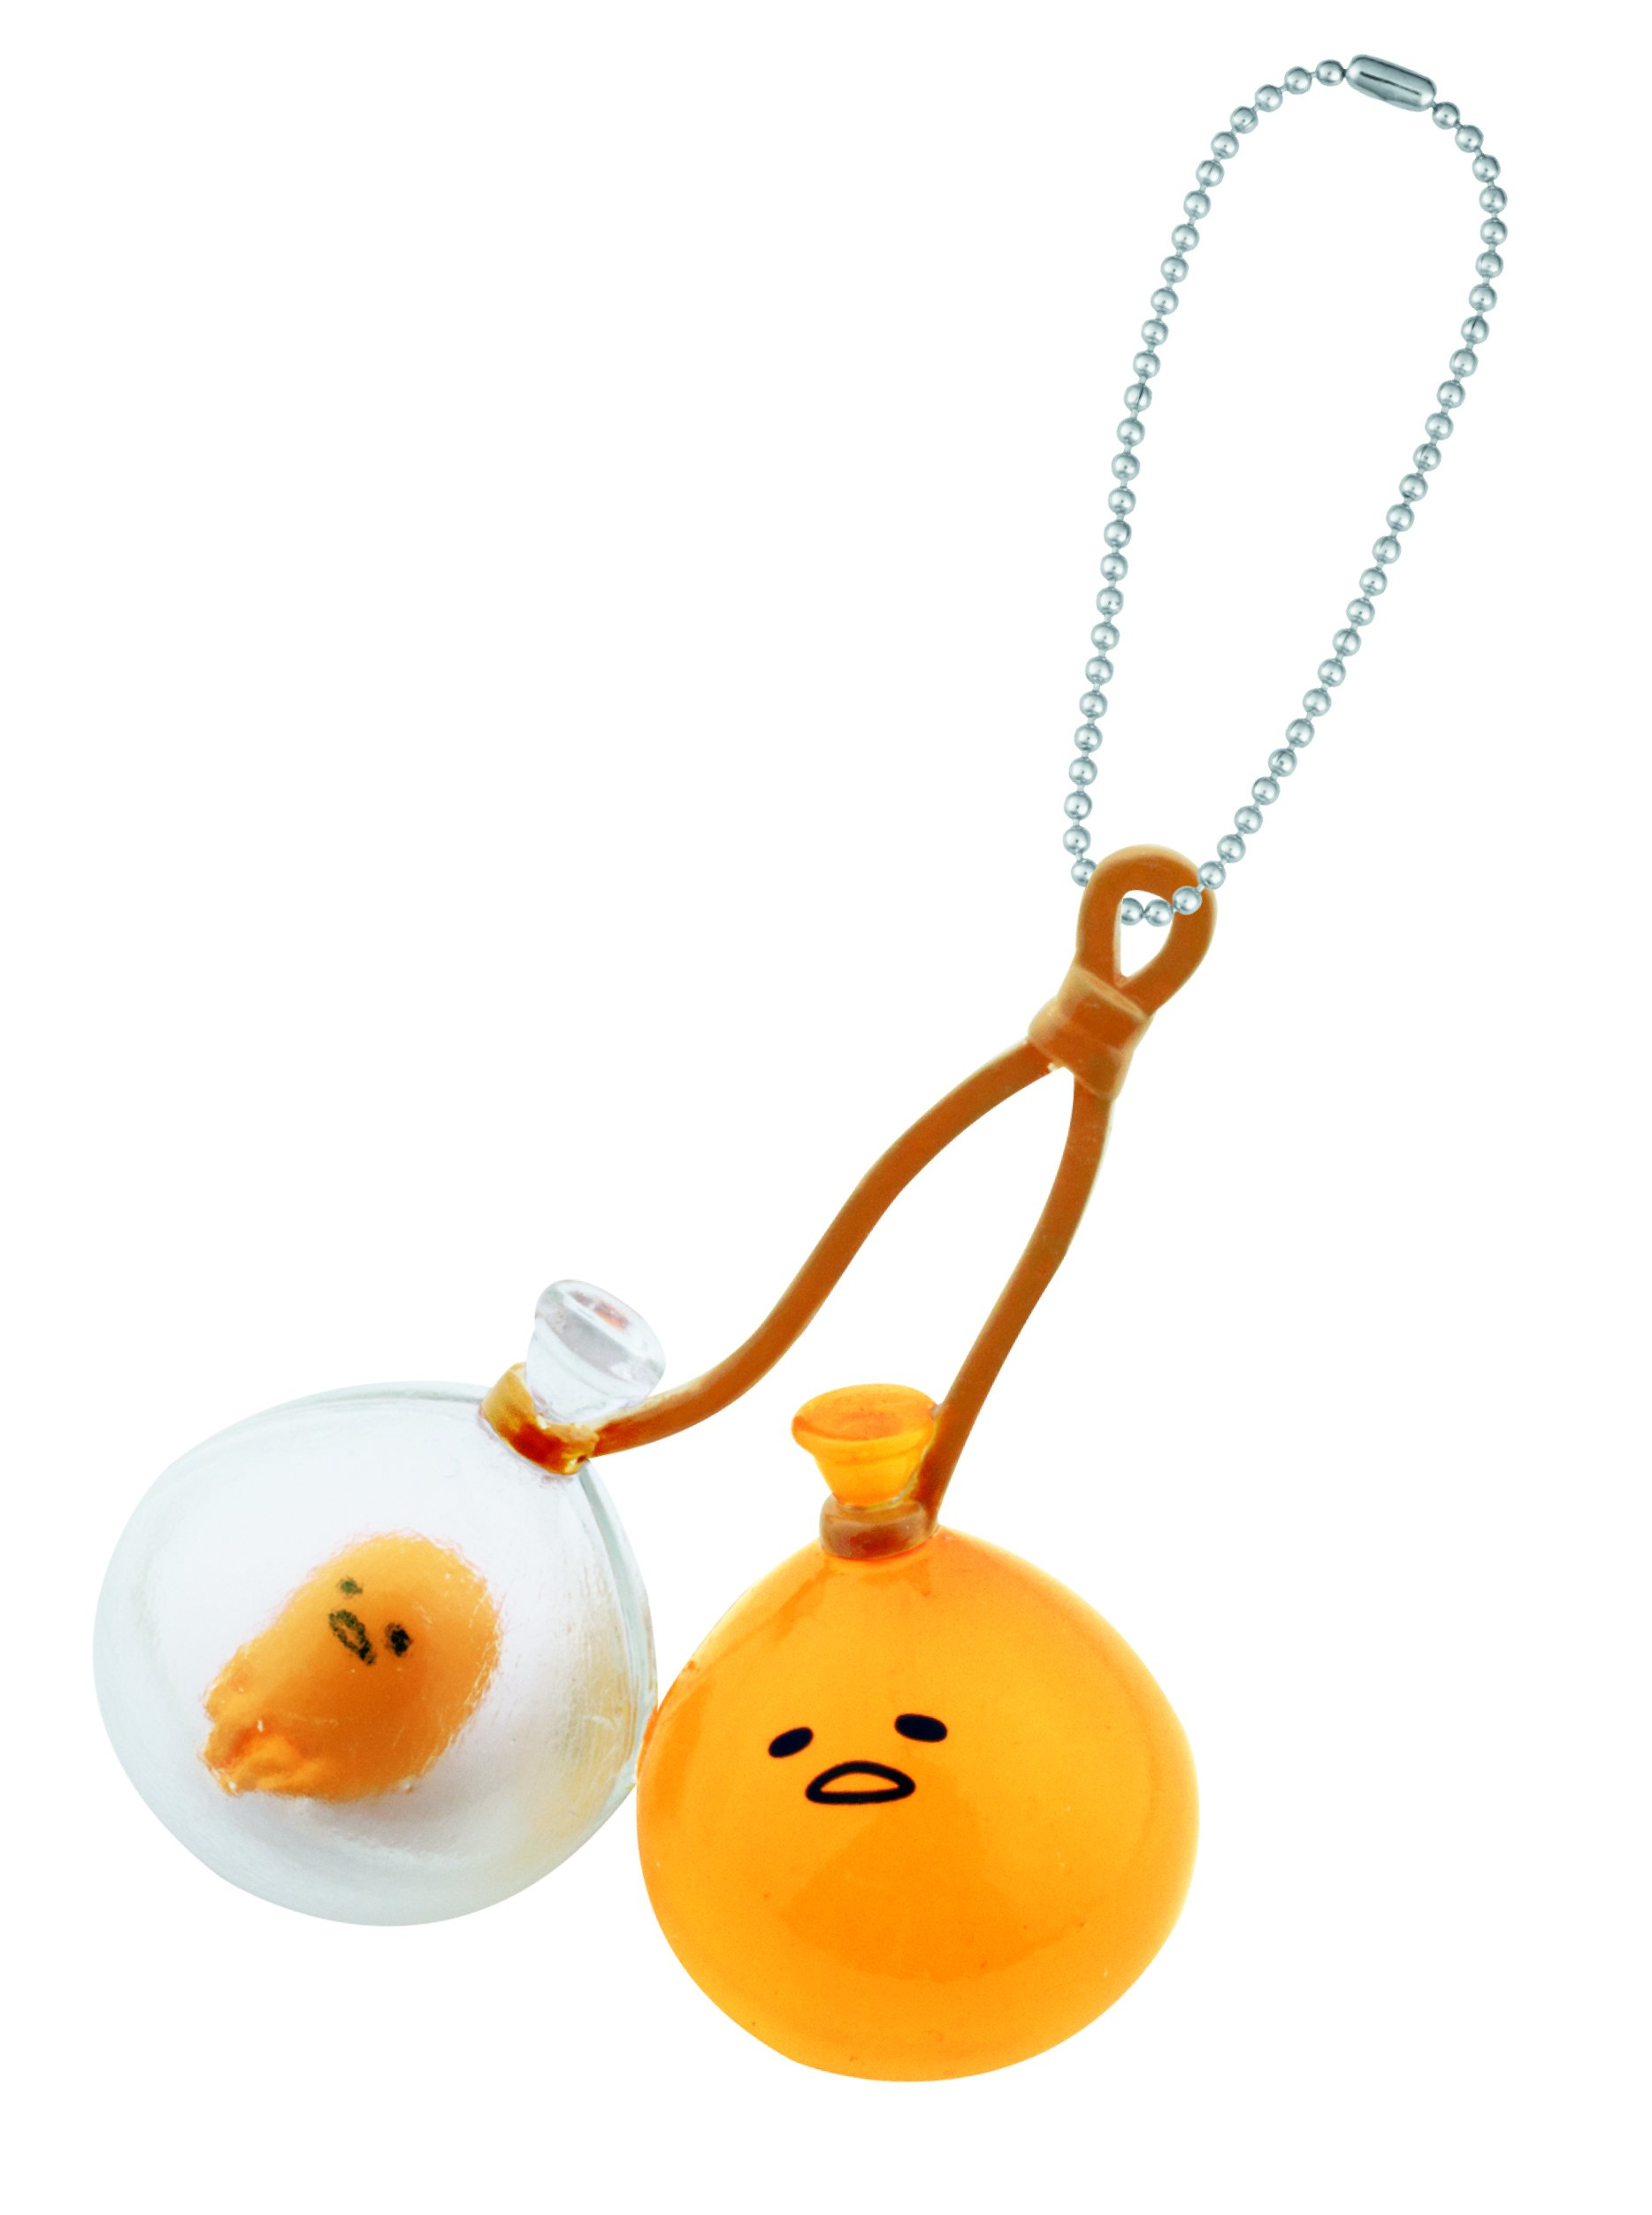 Full set Box 8 packages miniature figure Gudetama Japanese Festival Mascot by Re-Ment from Japan by Re-Ment (Image #8)